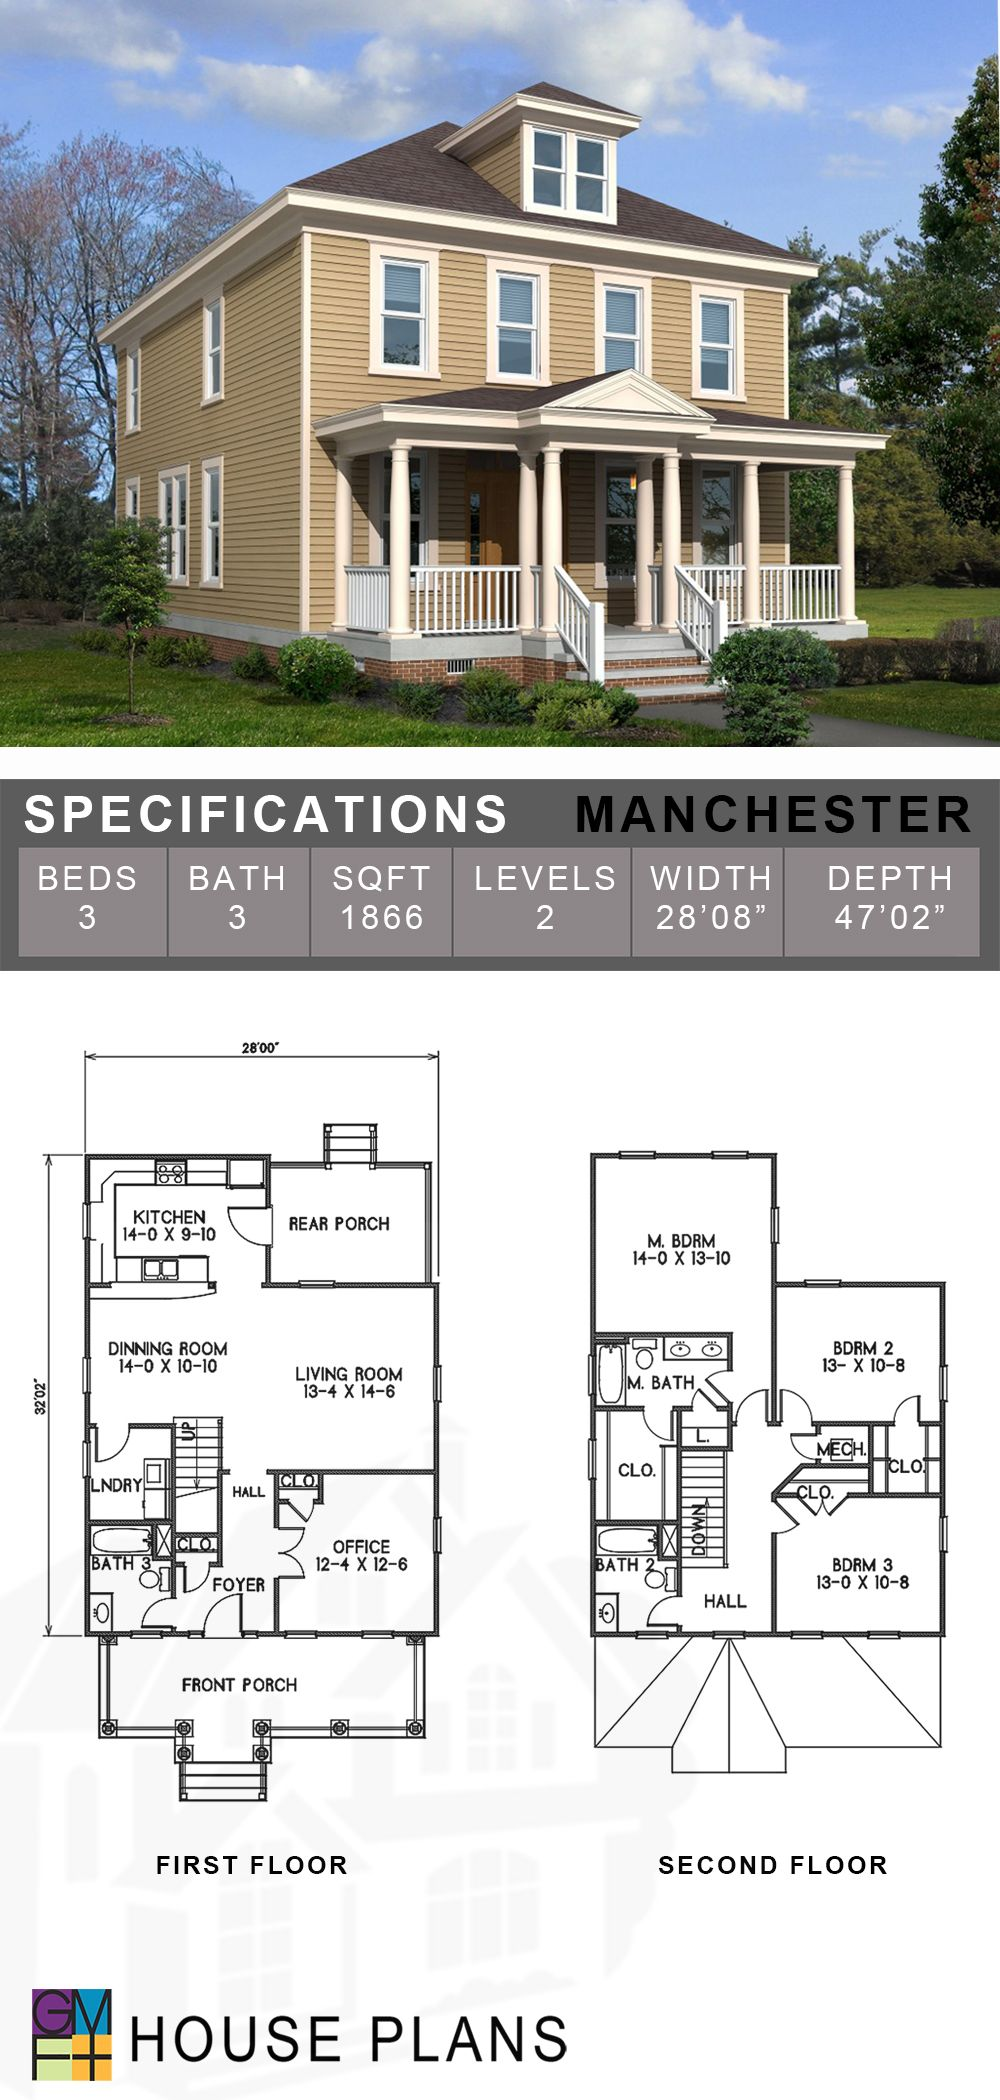 Manchester Architect House House Plans Model Homes